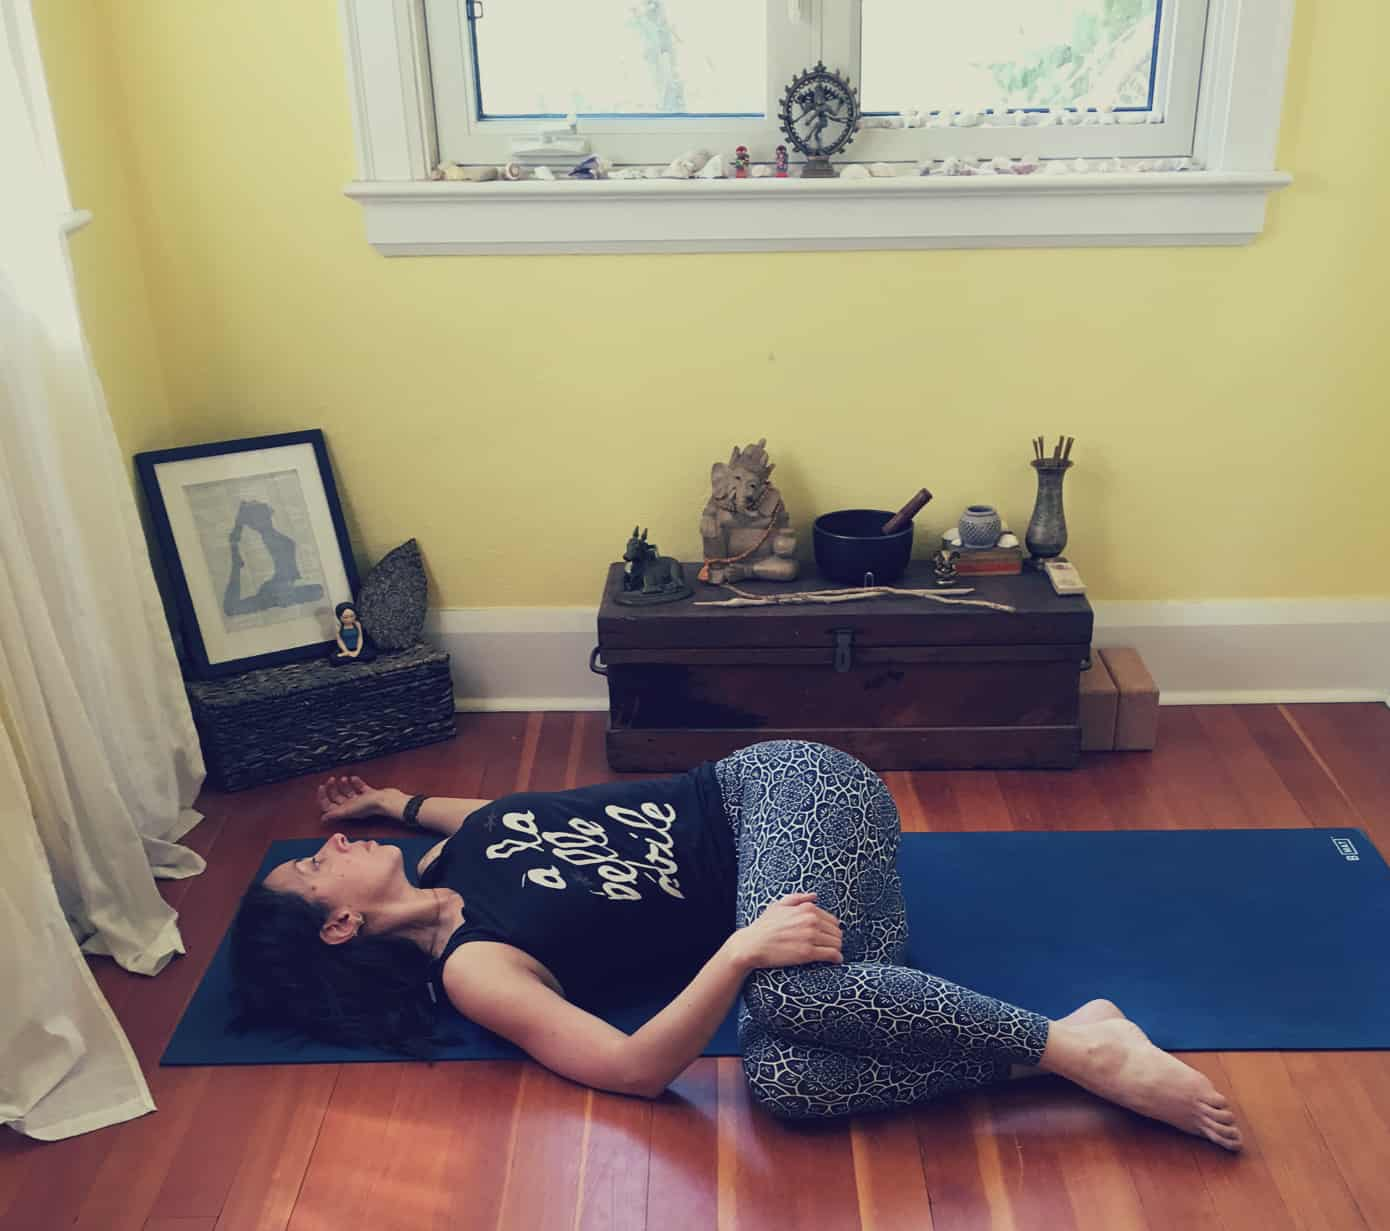 Yoga Poses for Digestion - Reclined Twist